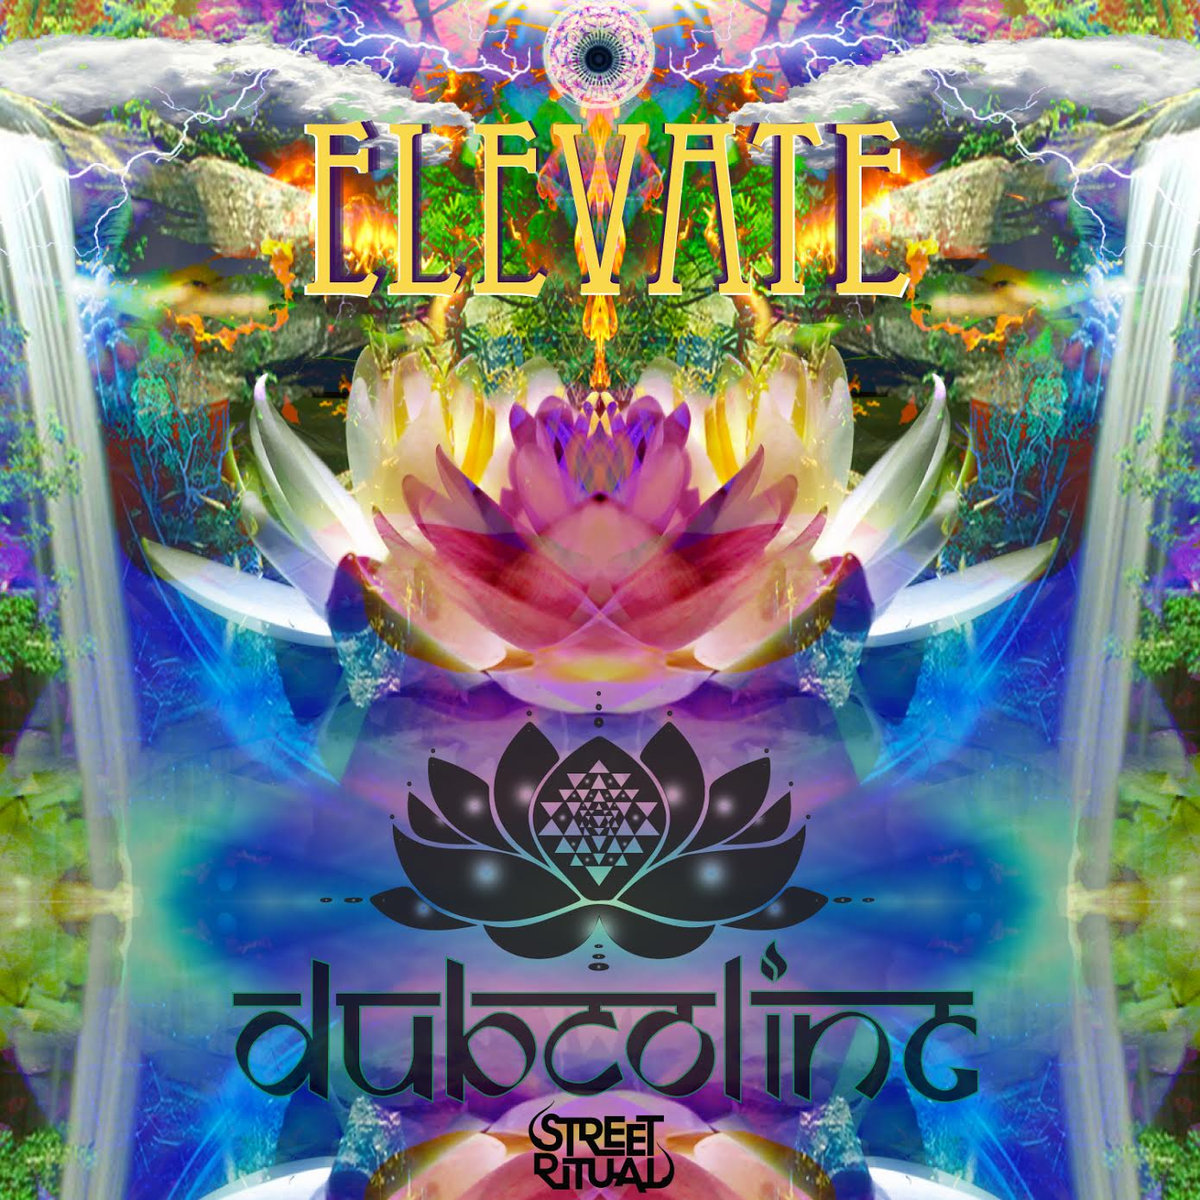 DubCOliNG - YOX @ 'Elevate' album (bass, dub)